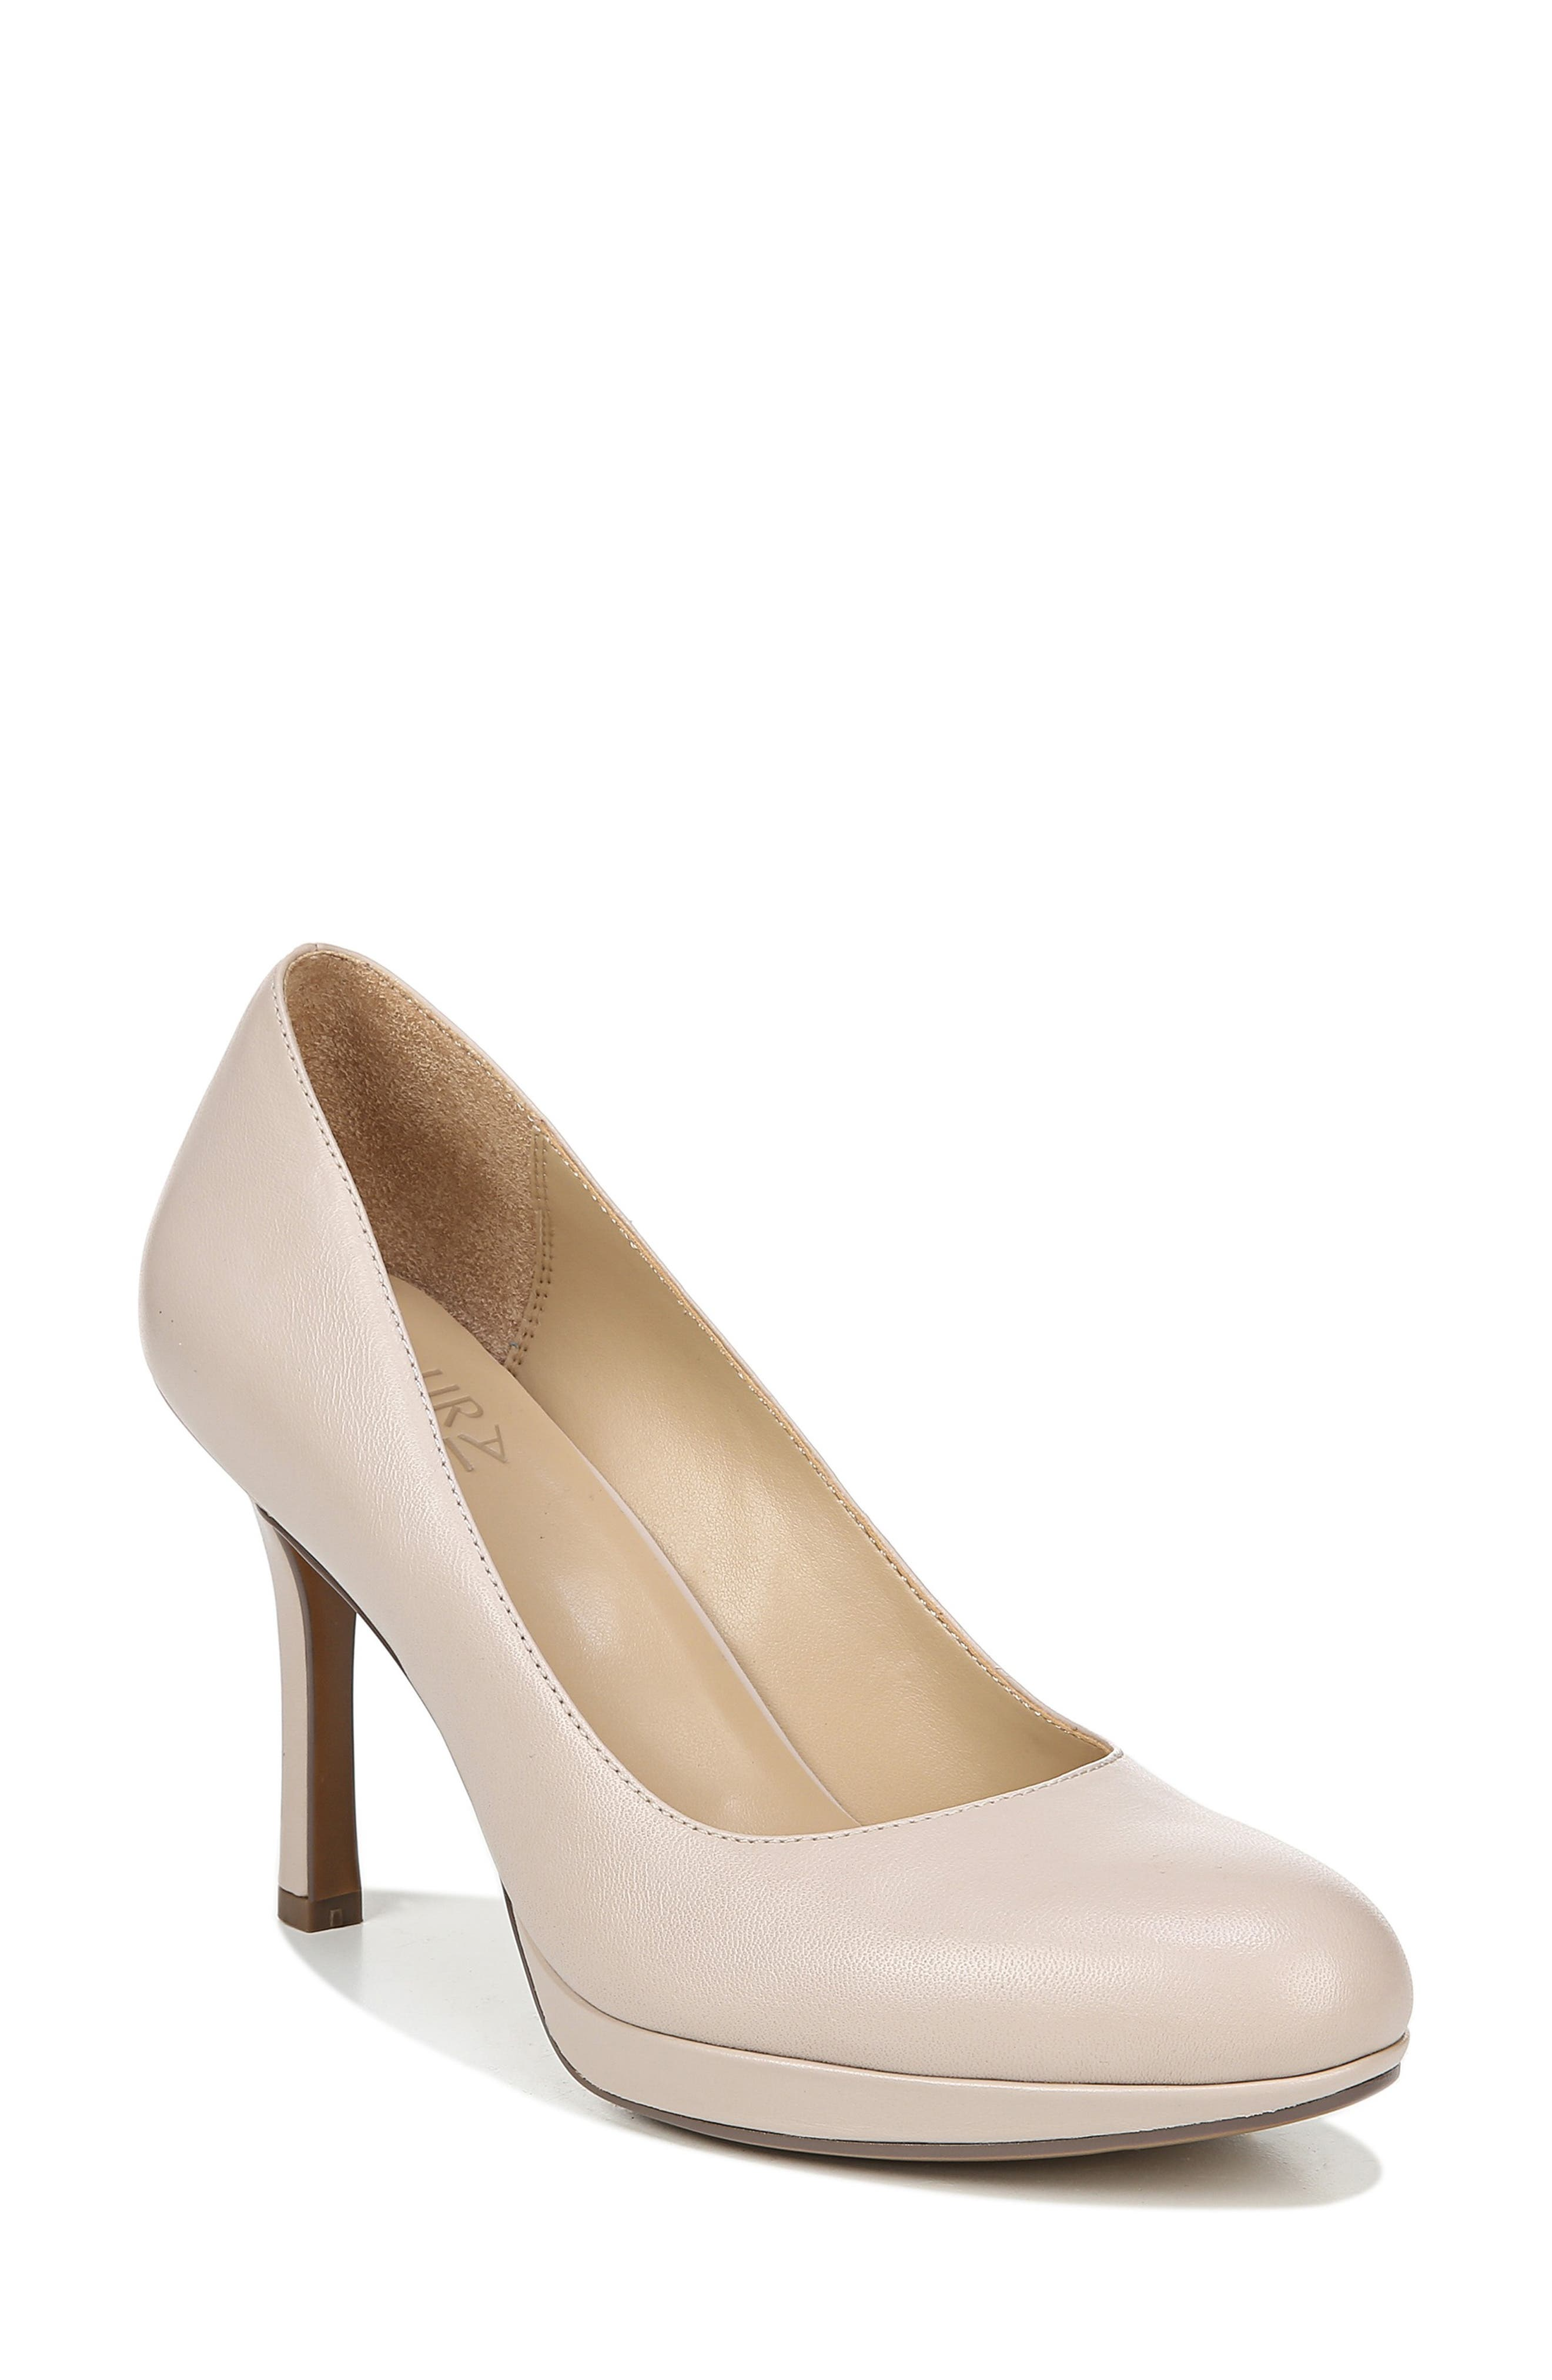 Naturalizer Celina Almond Toe Pump, Grey